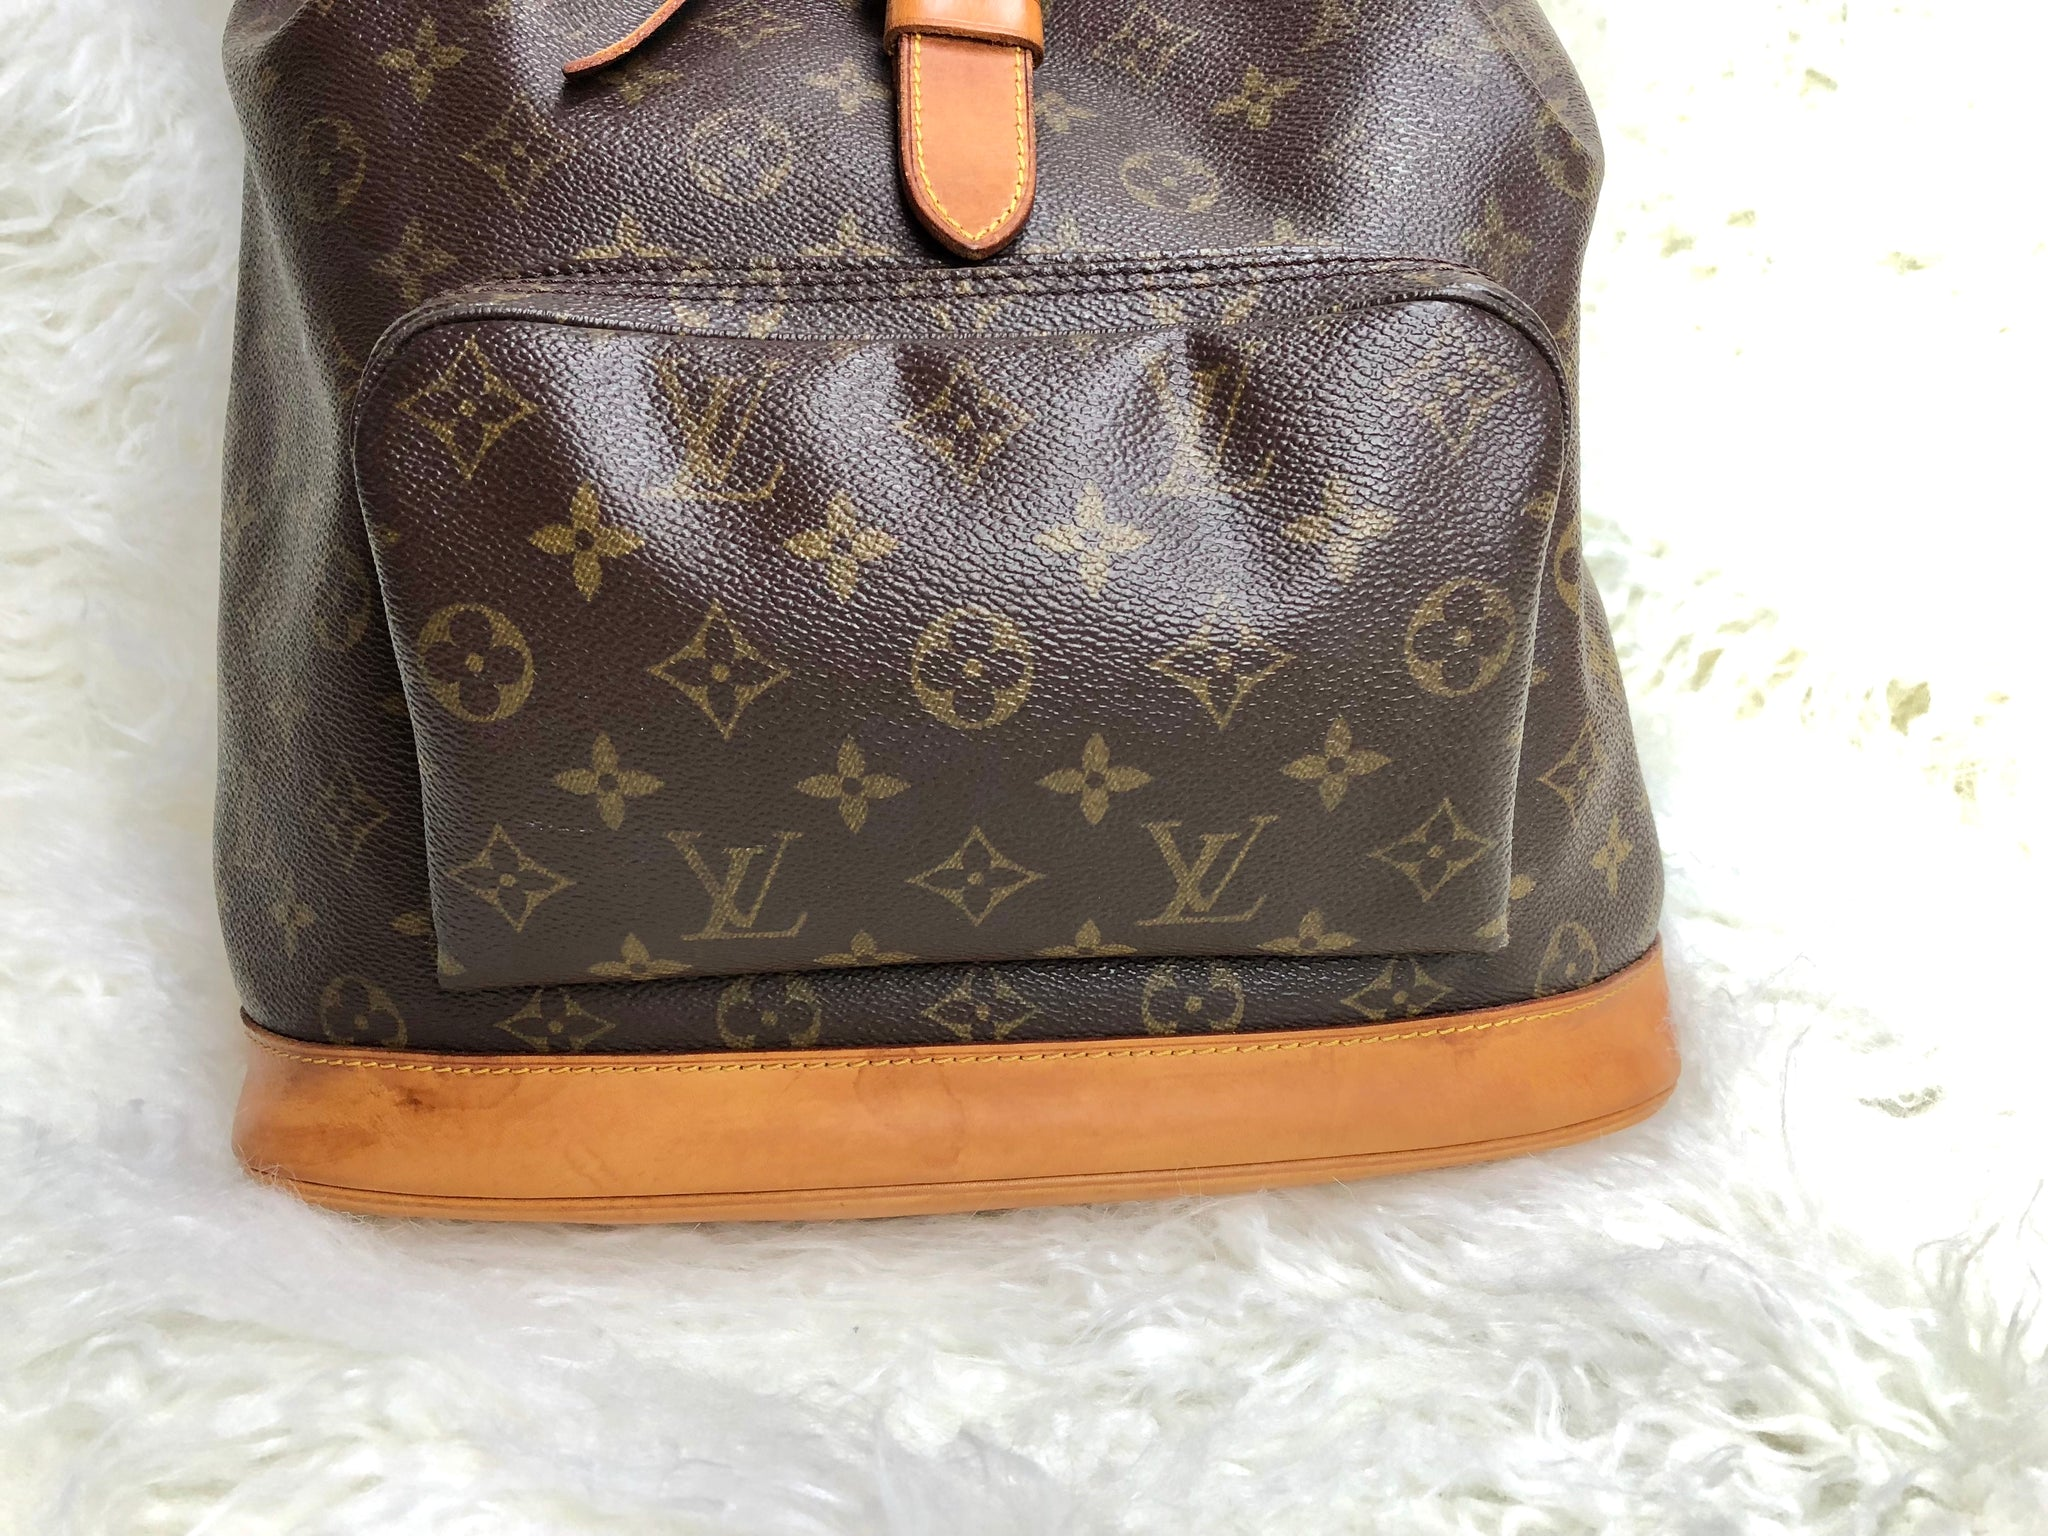 LOUIS VUITTON Monogram Montsouris GM Backpack